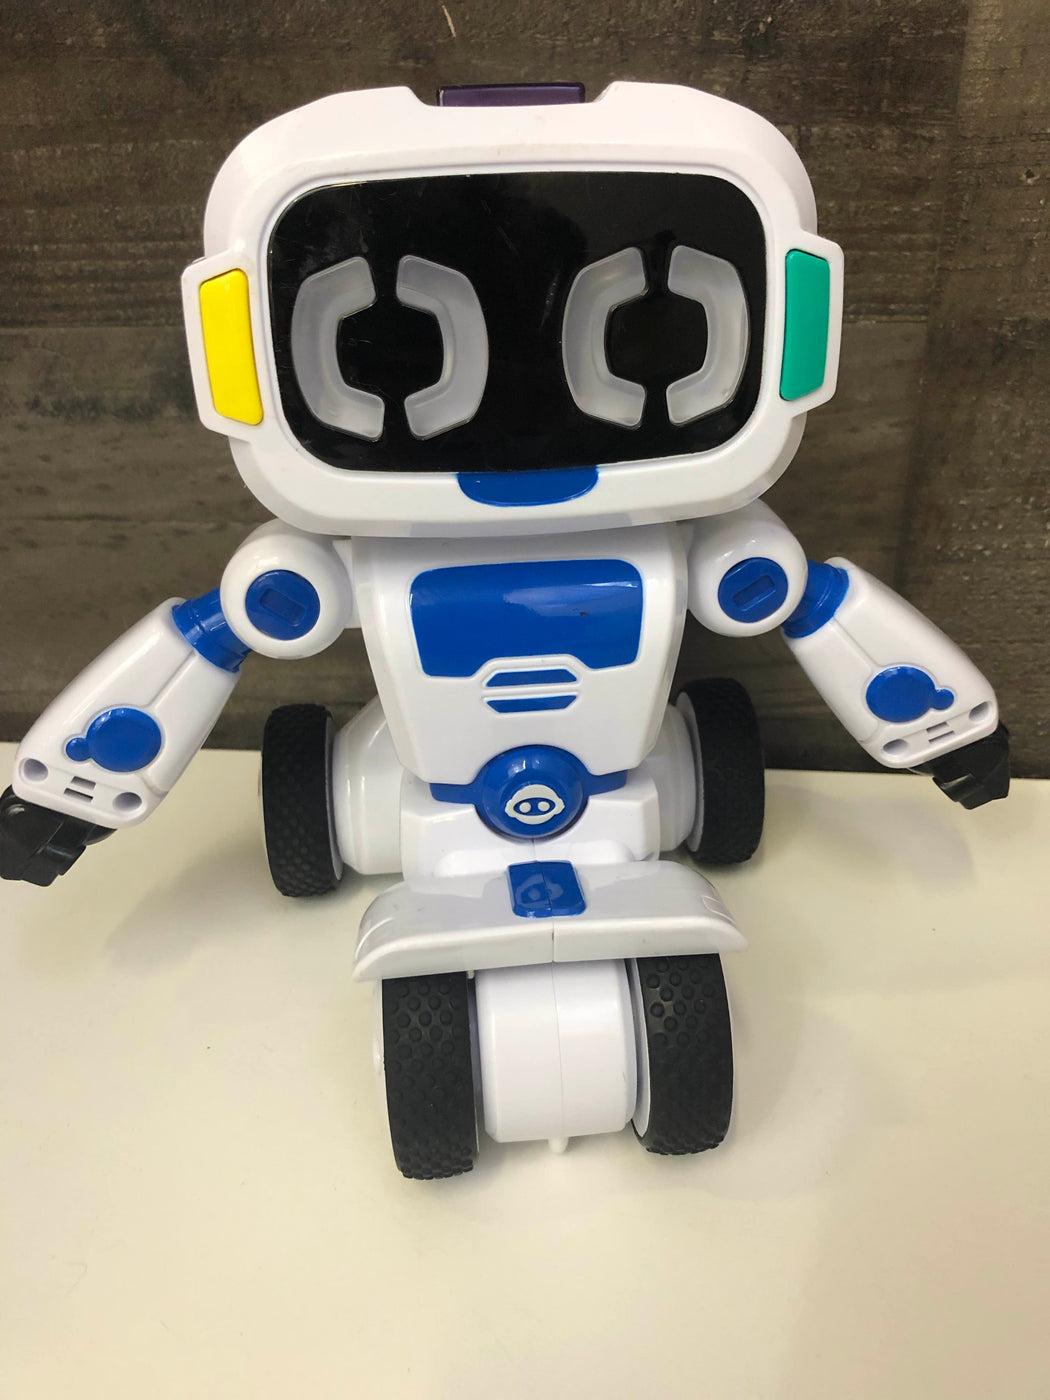 secondhand WowWee My First Robot Tipster